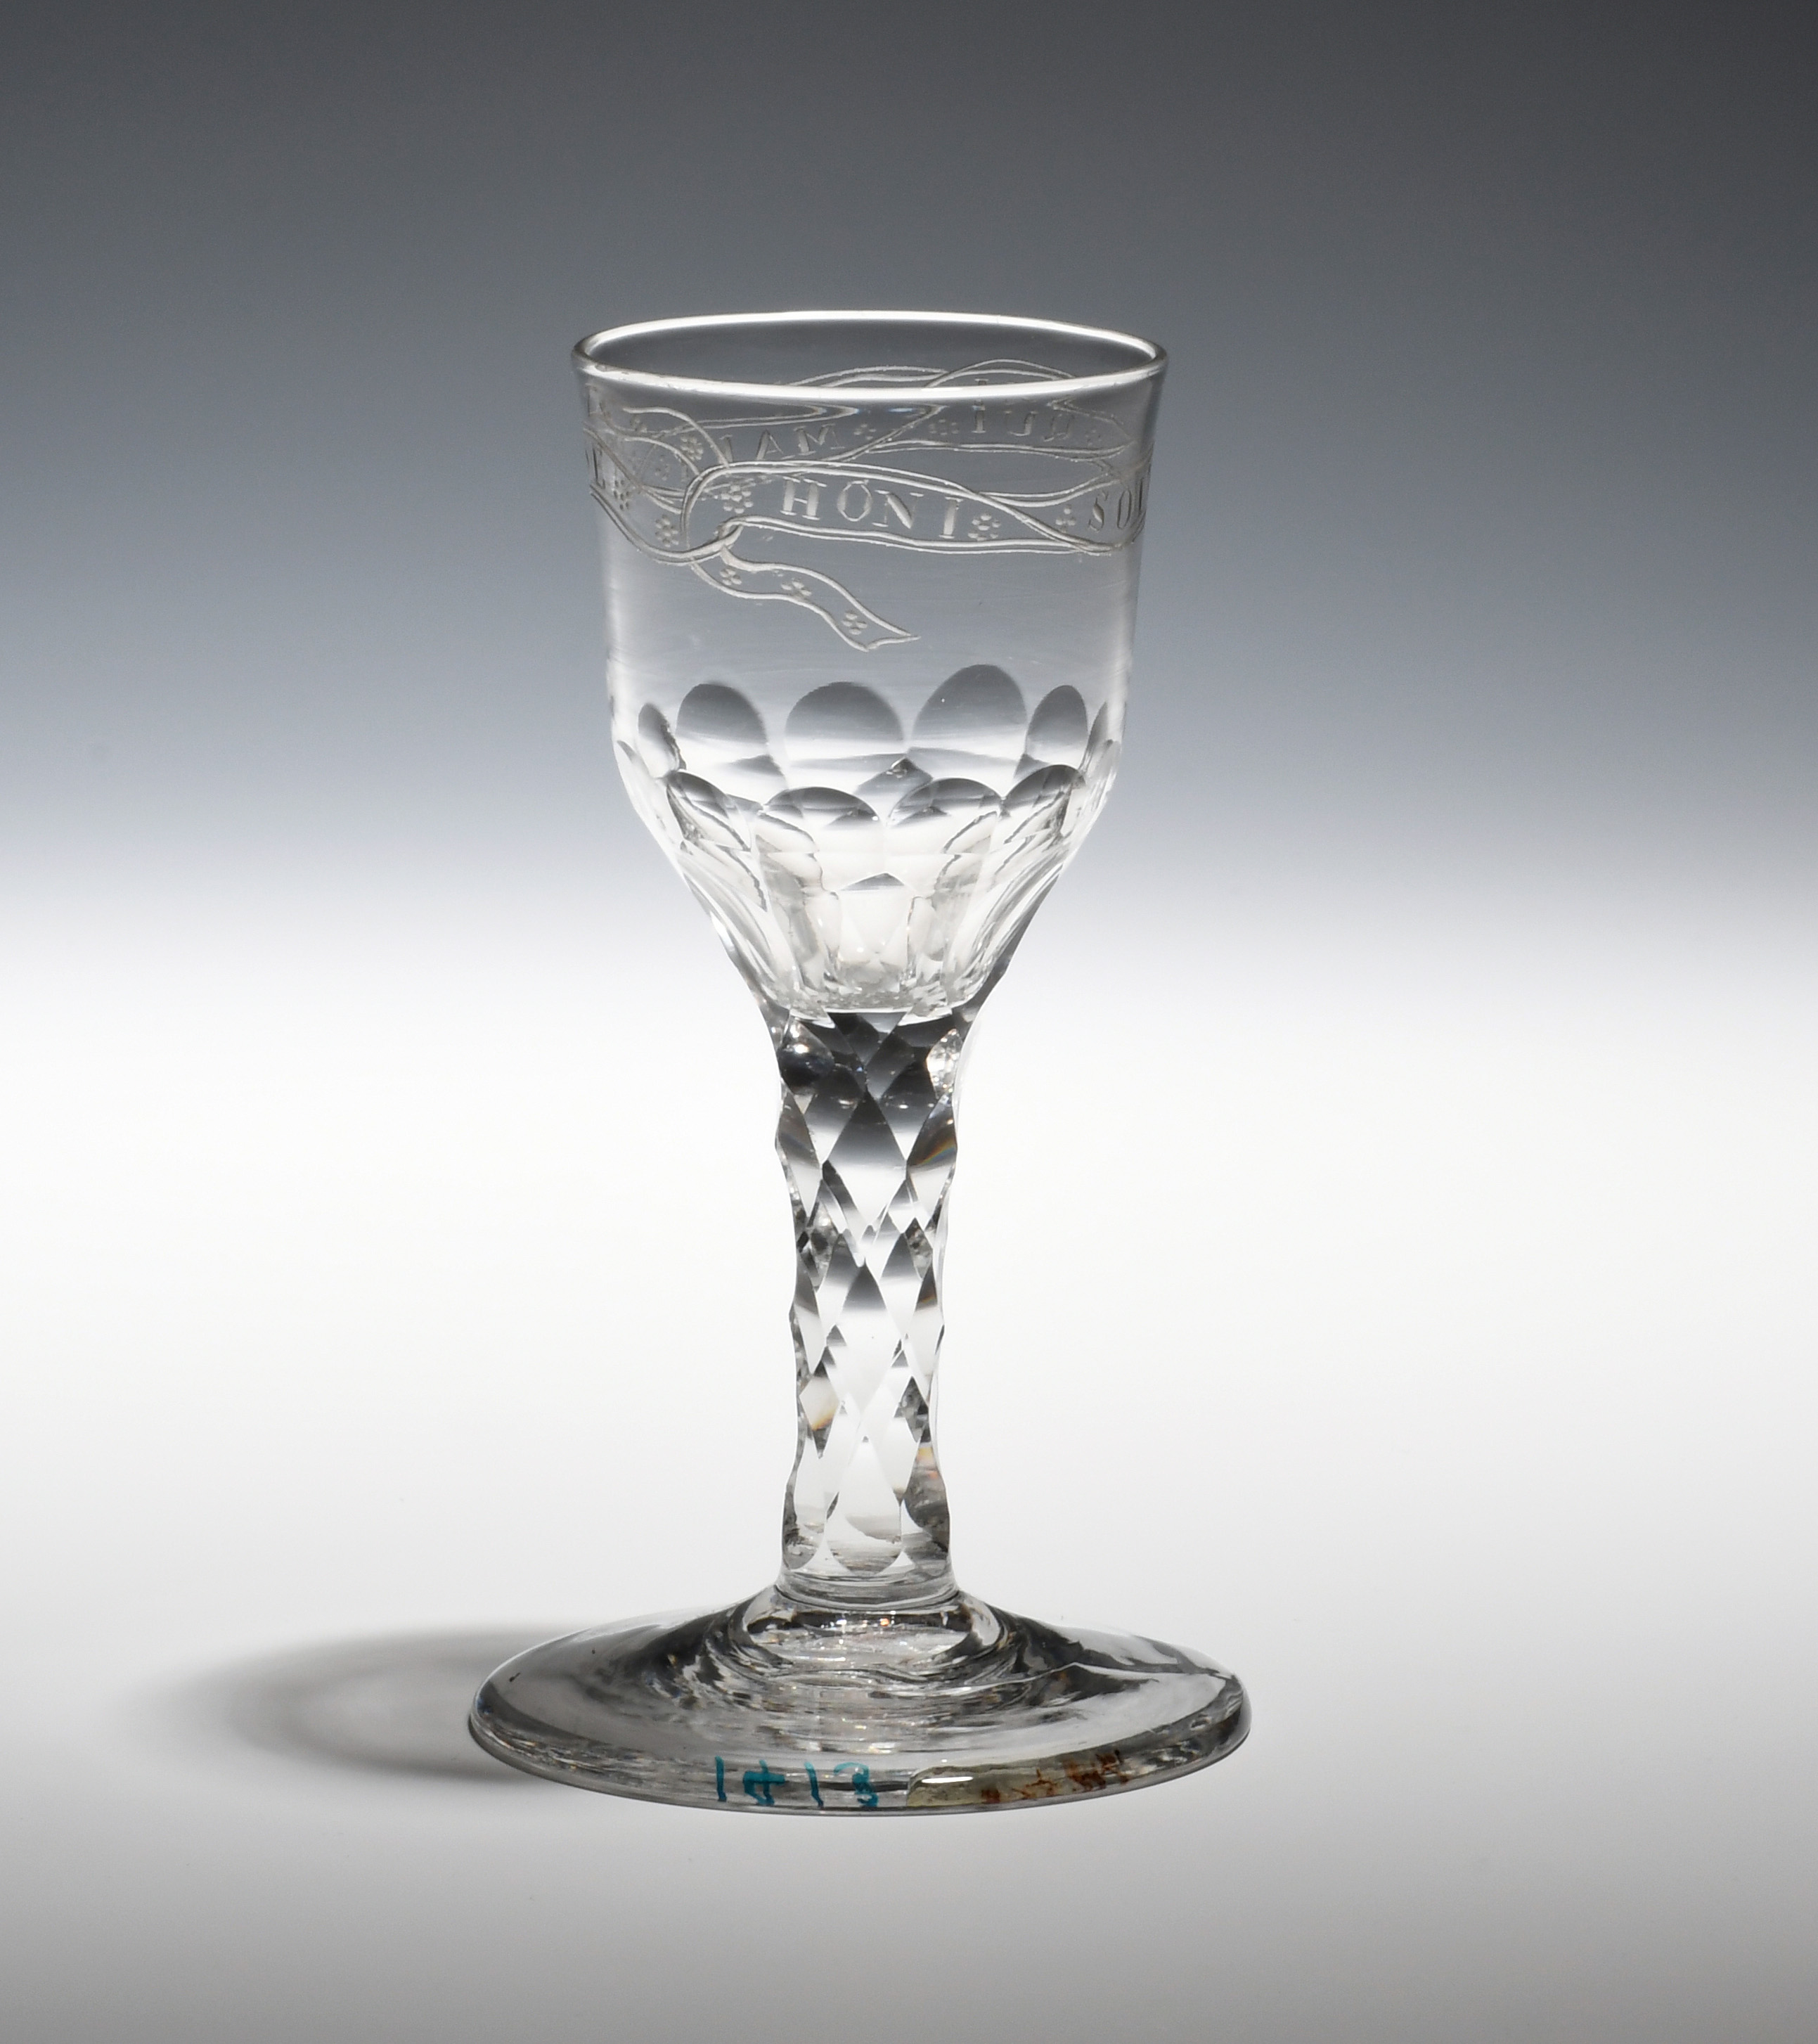 A wine glass c.1770, the ogee bowl engraved with 'Honi Soi Qui Mal Y Pense', the motto of the